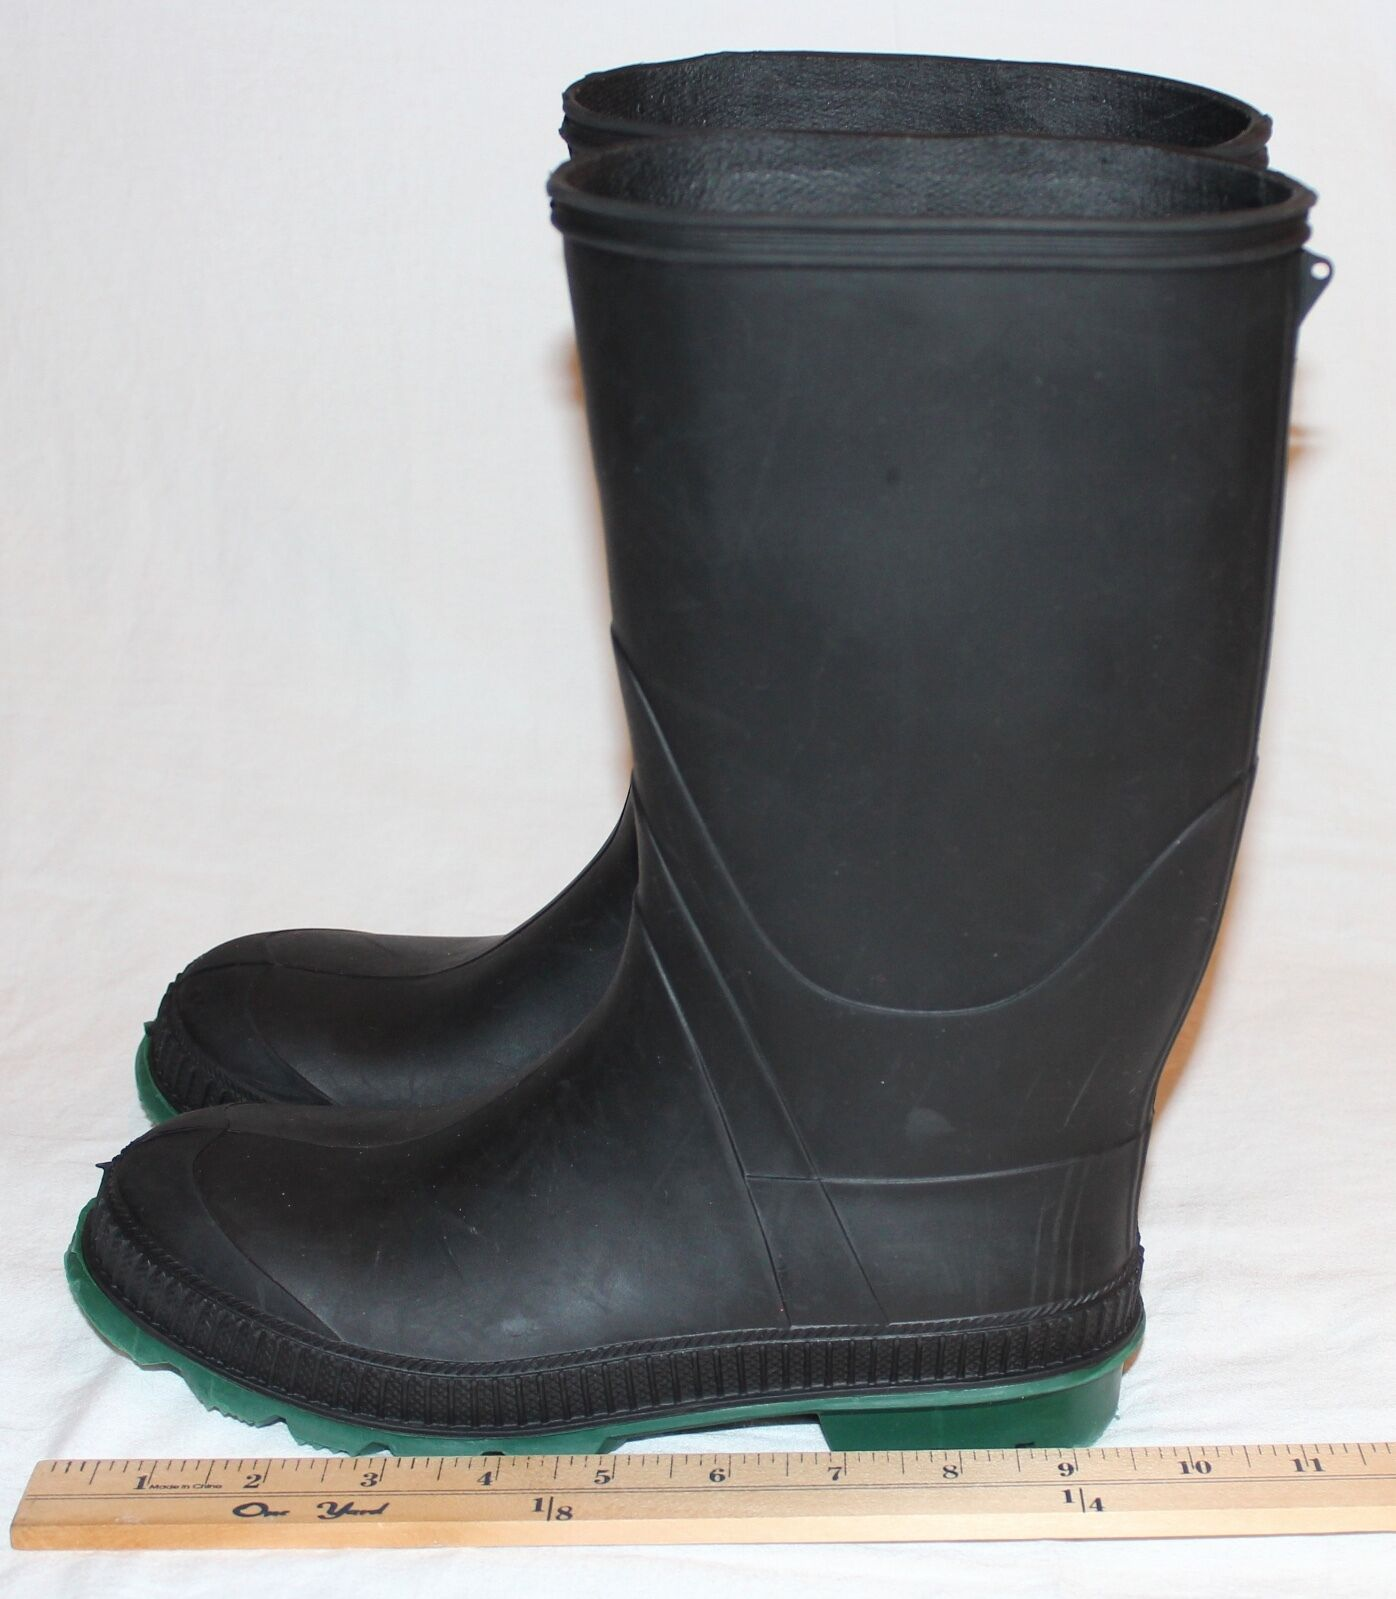 Rubber Boots Black with Green Soles Size 7